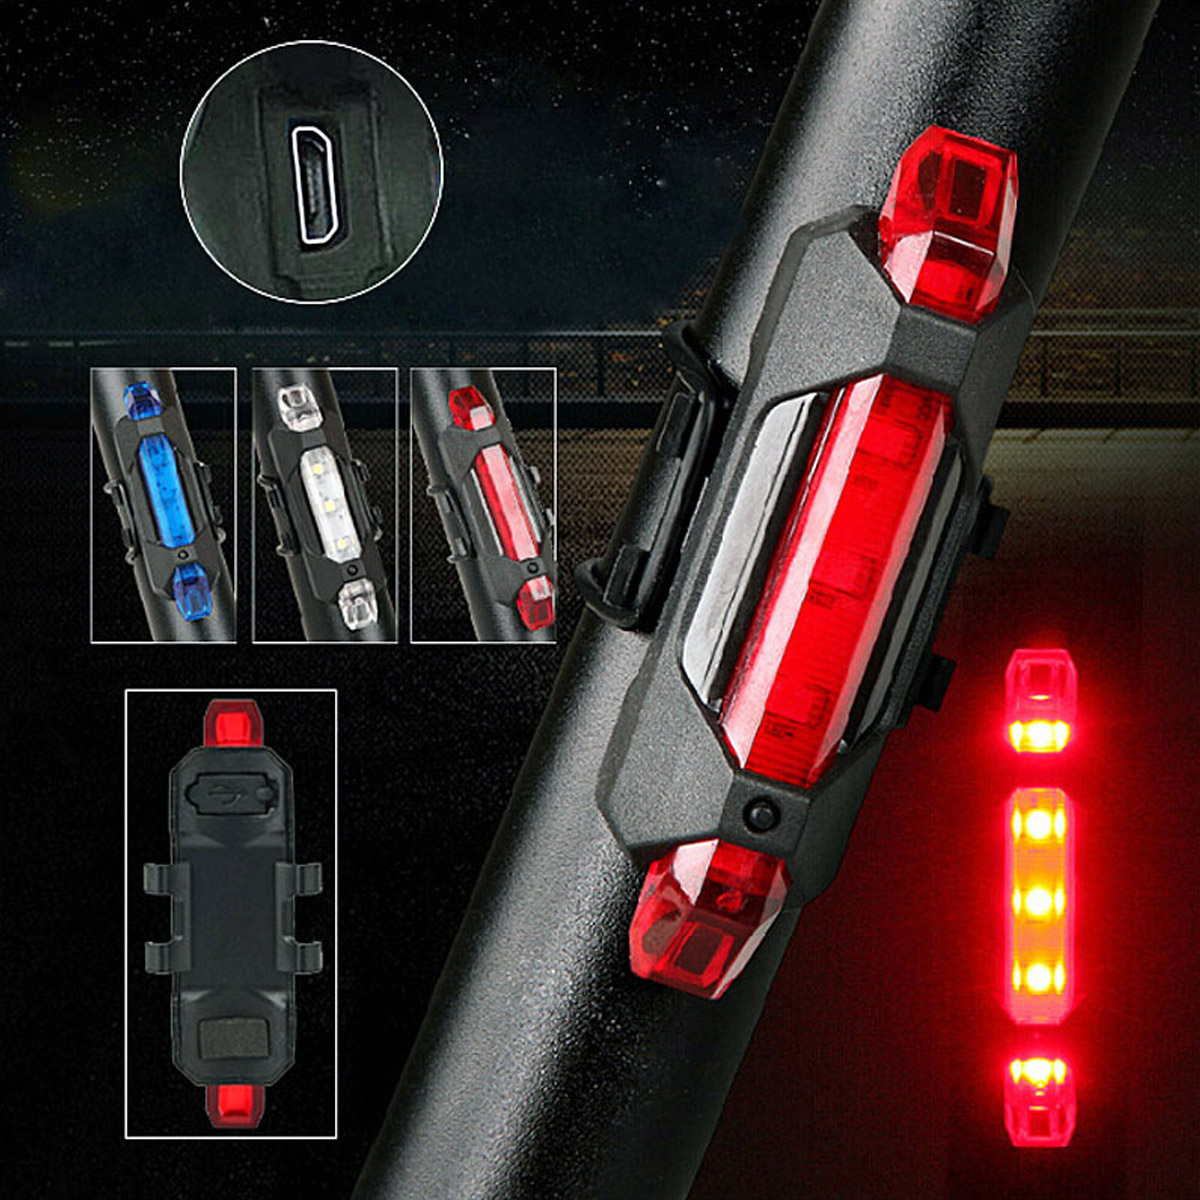 New Portable LED USB Rechargeable Cycling Light Bike Bicycle Tail Rear Safety Warning Light 55 YS-BUY цена